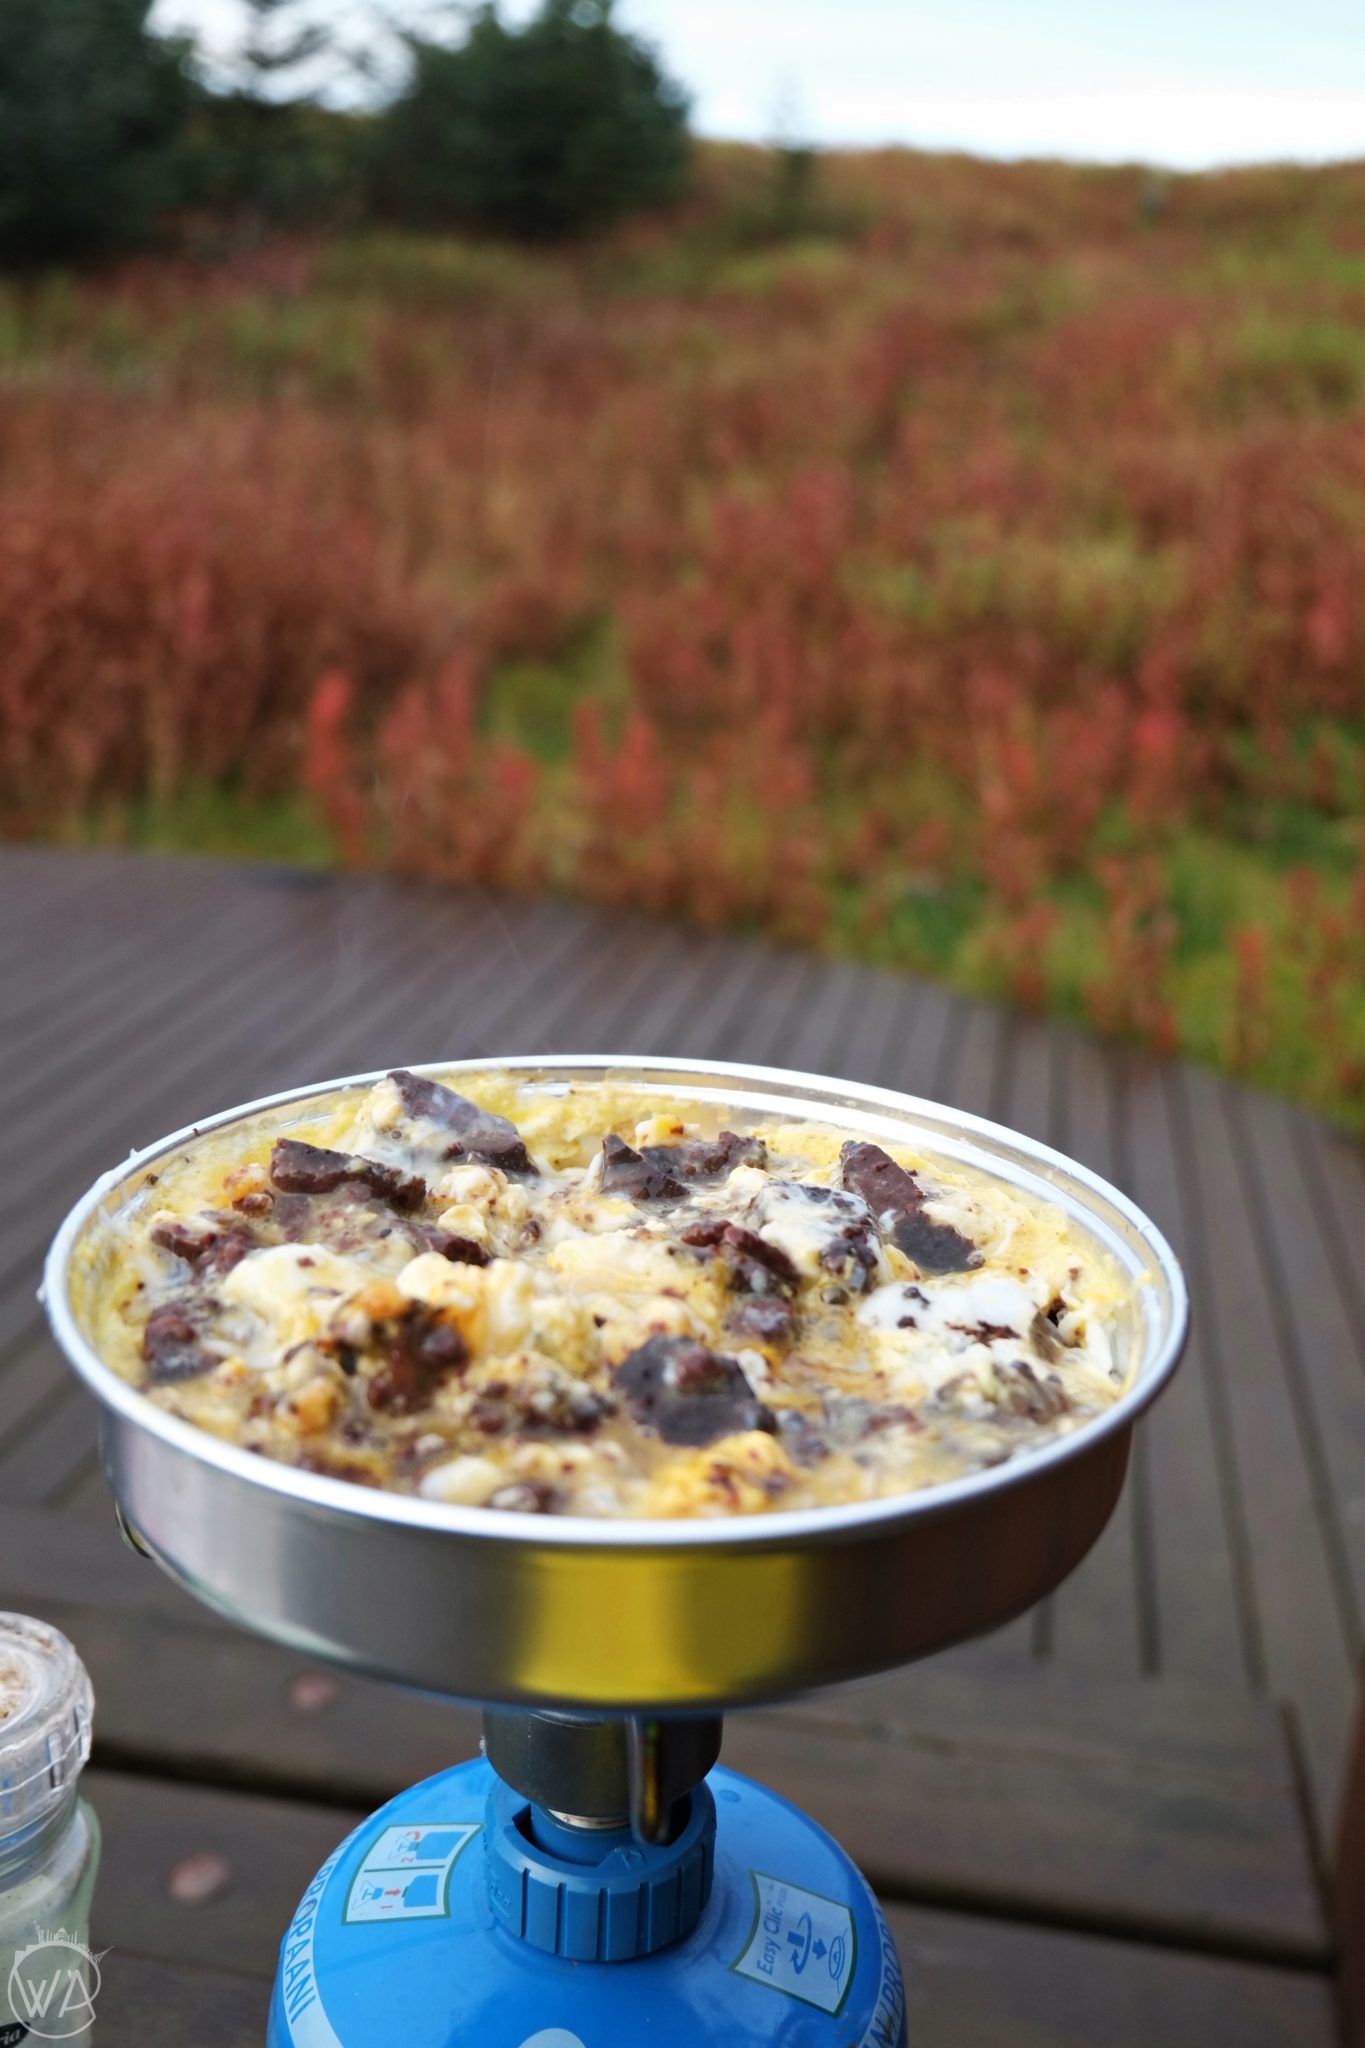 Breakfast during wild camping